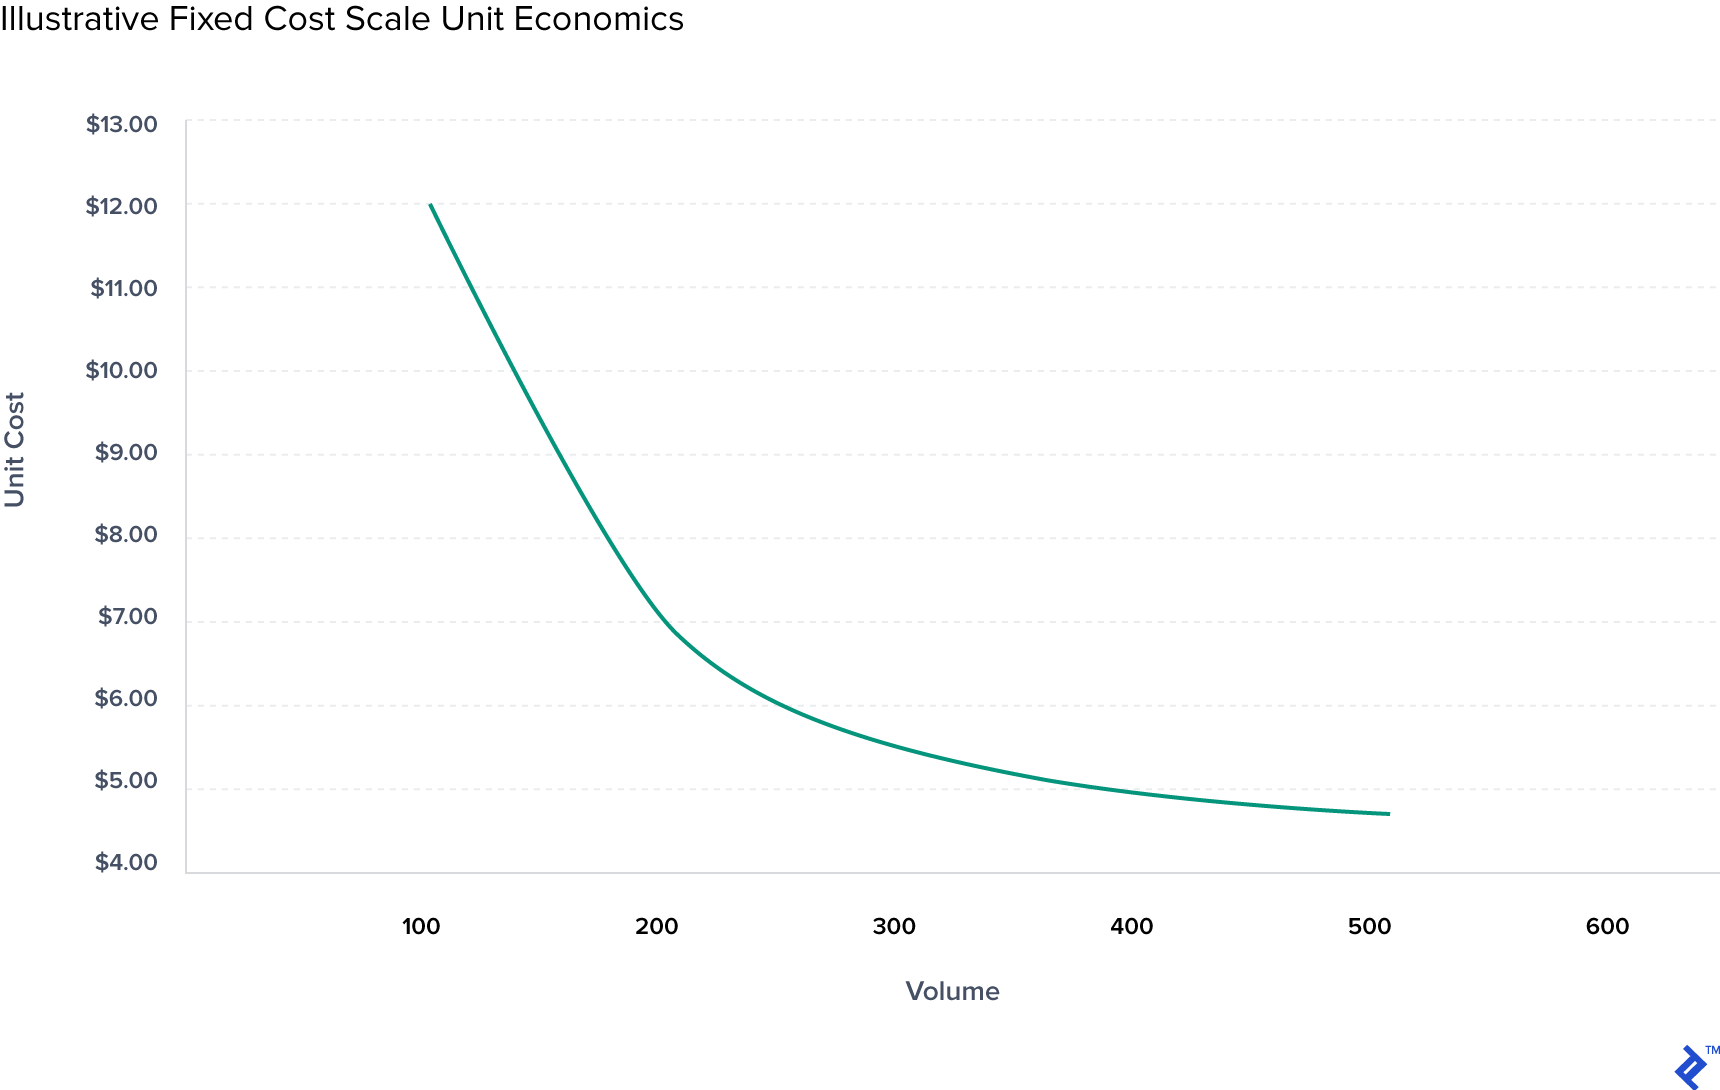 Chart showing fixed cost scale unit economics